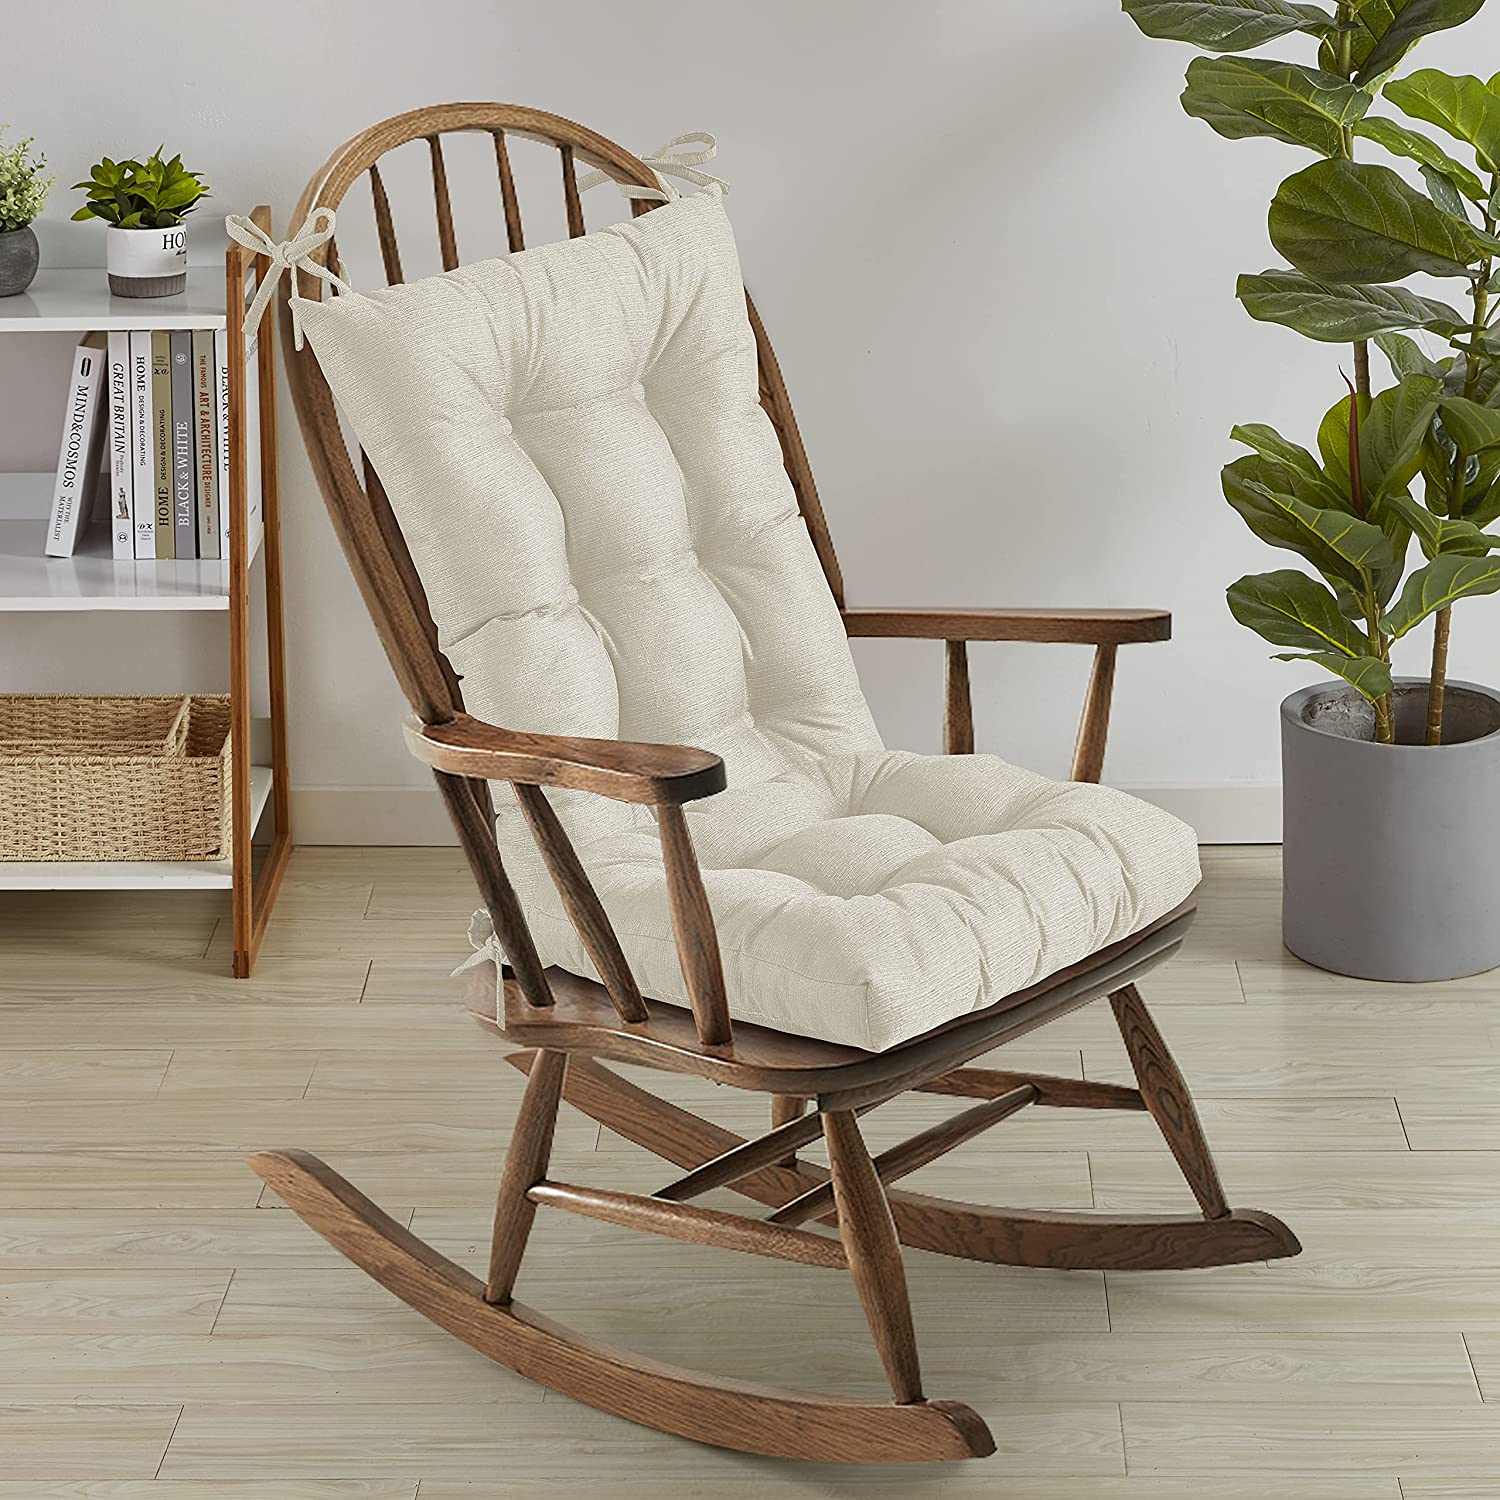 Sweet Home Collection Rocking Chair Max 81% OFF Cushion Premium Super-cheap Tufted Pads